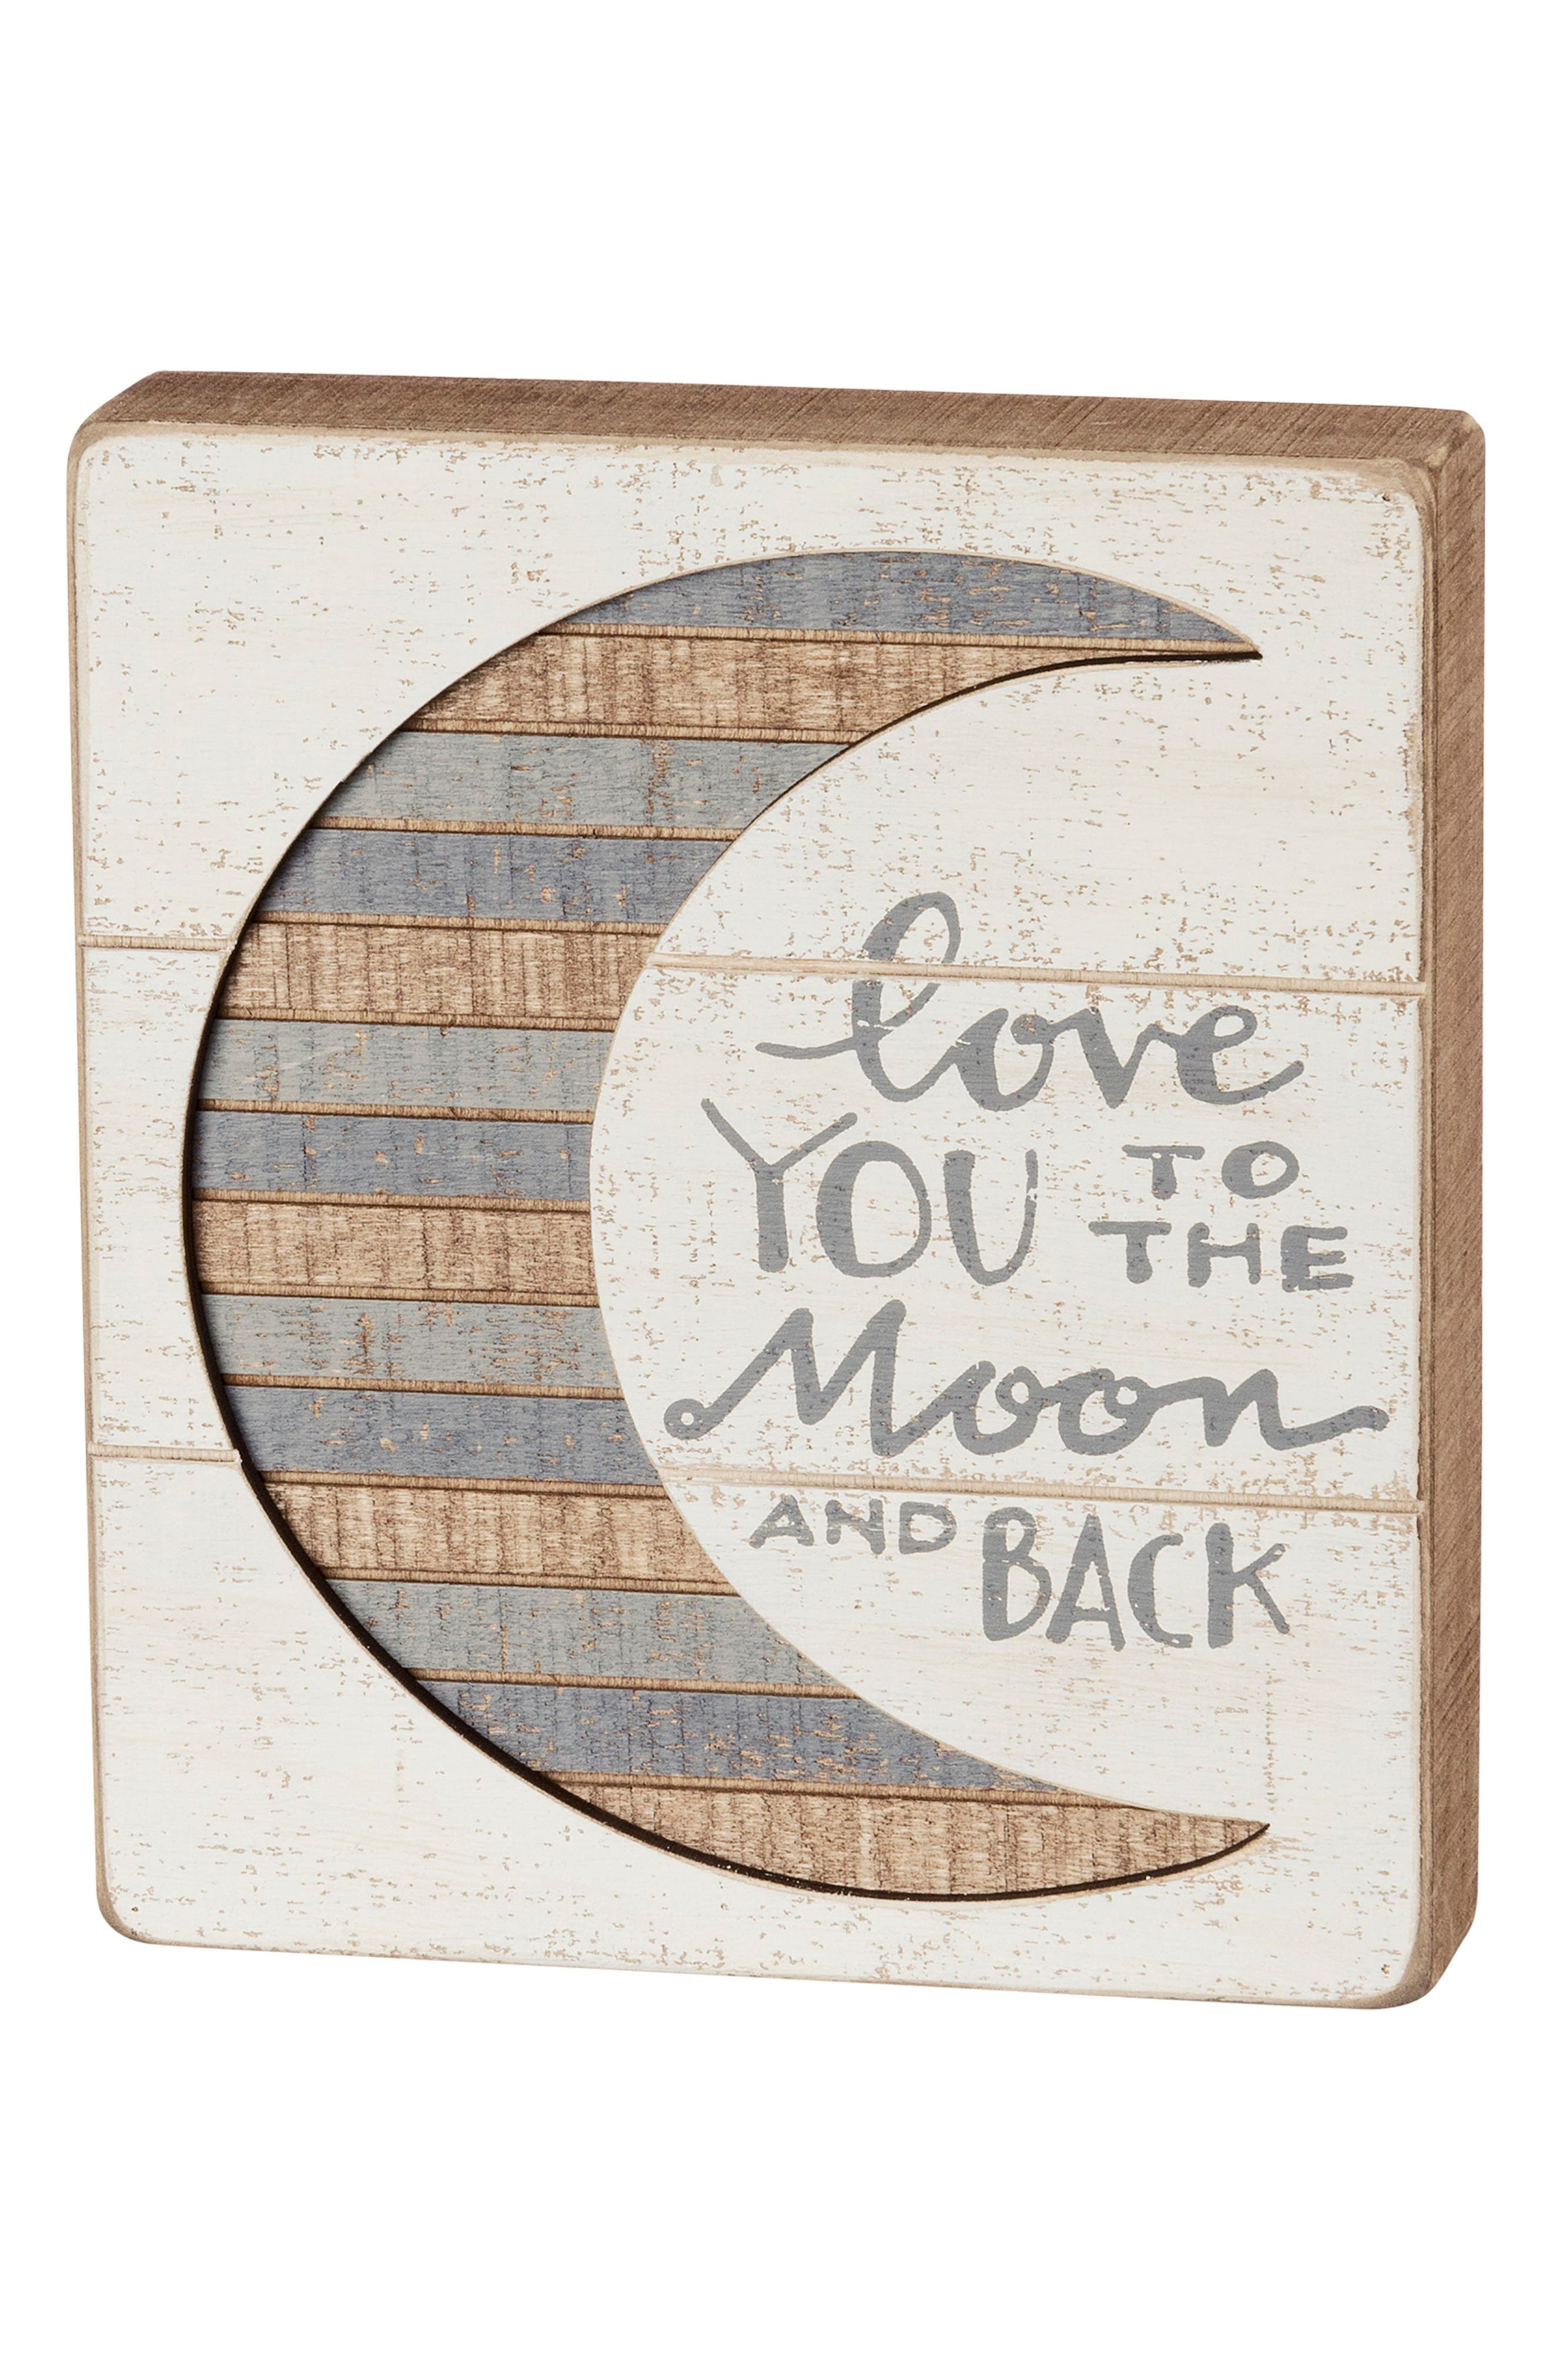 Love You To The Moon & Back Slat Box Sign,                             Main thumbnail 1, color,                             100